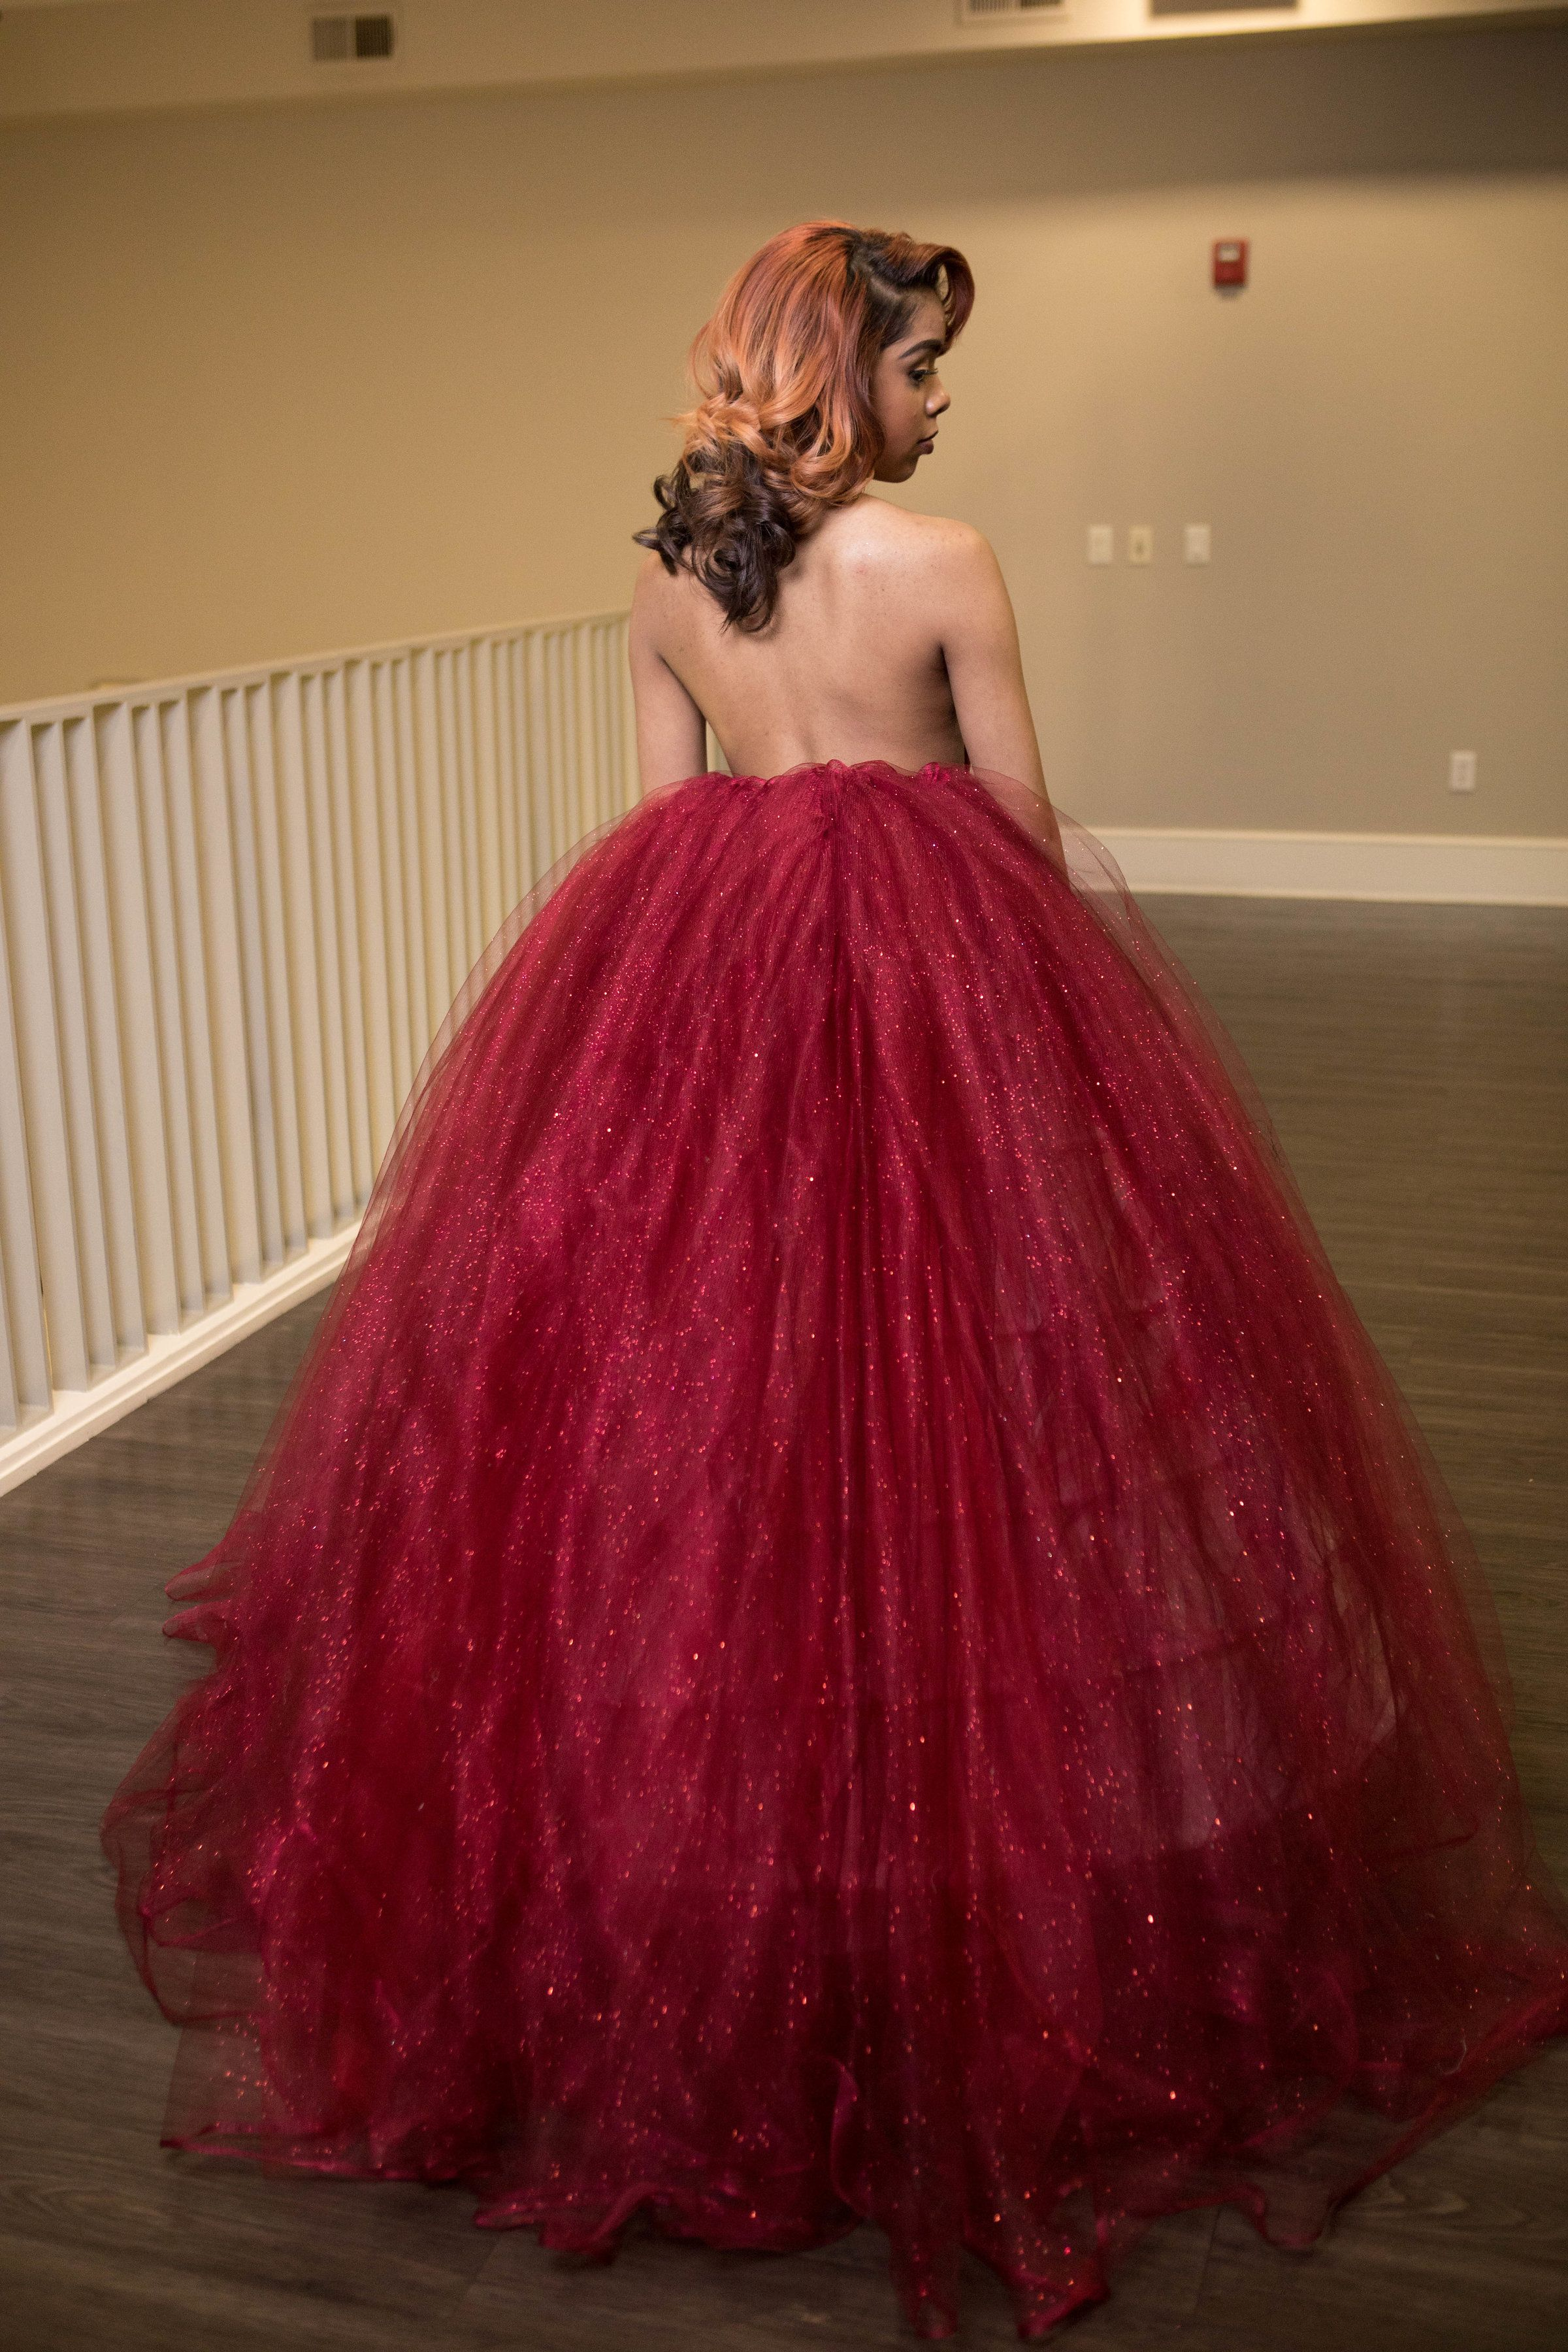 The Best Prom Dress For Your Body Type ft. Qlichee | Pinterest ...